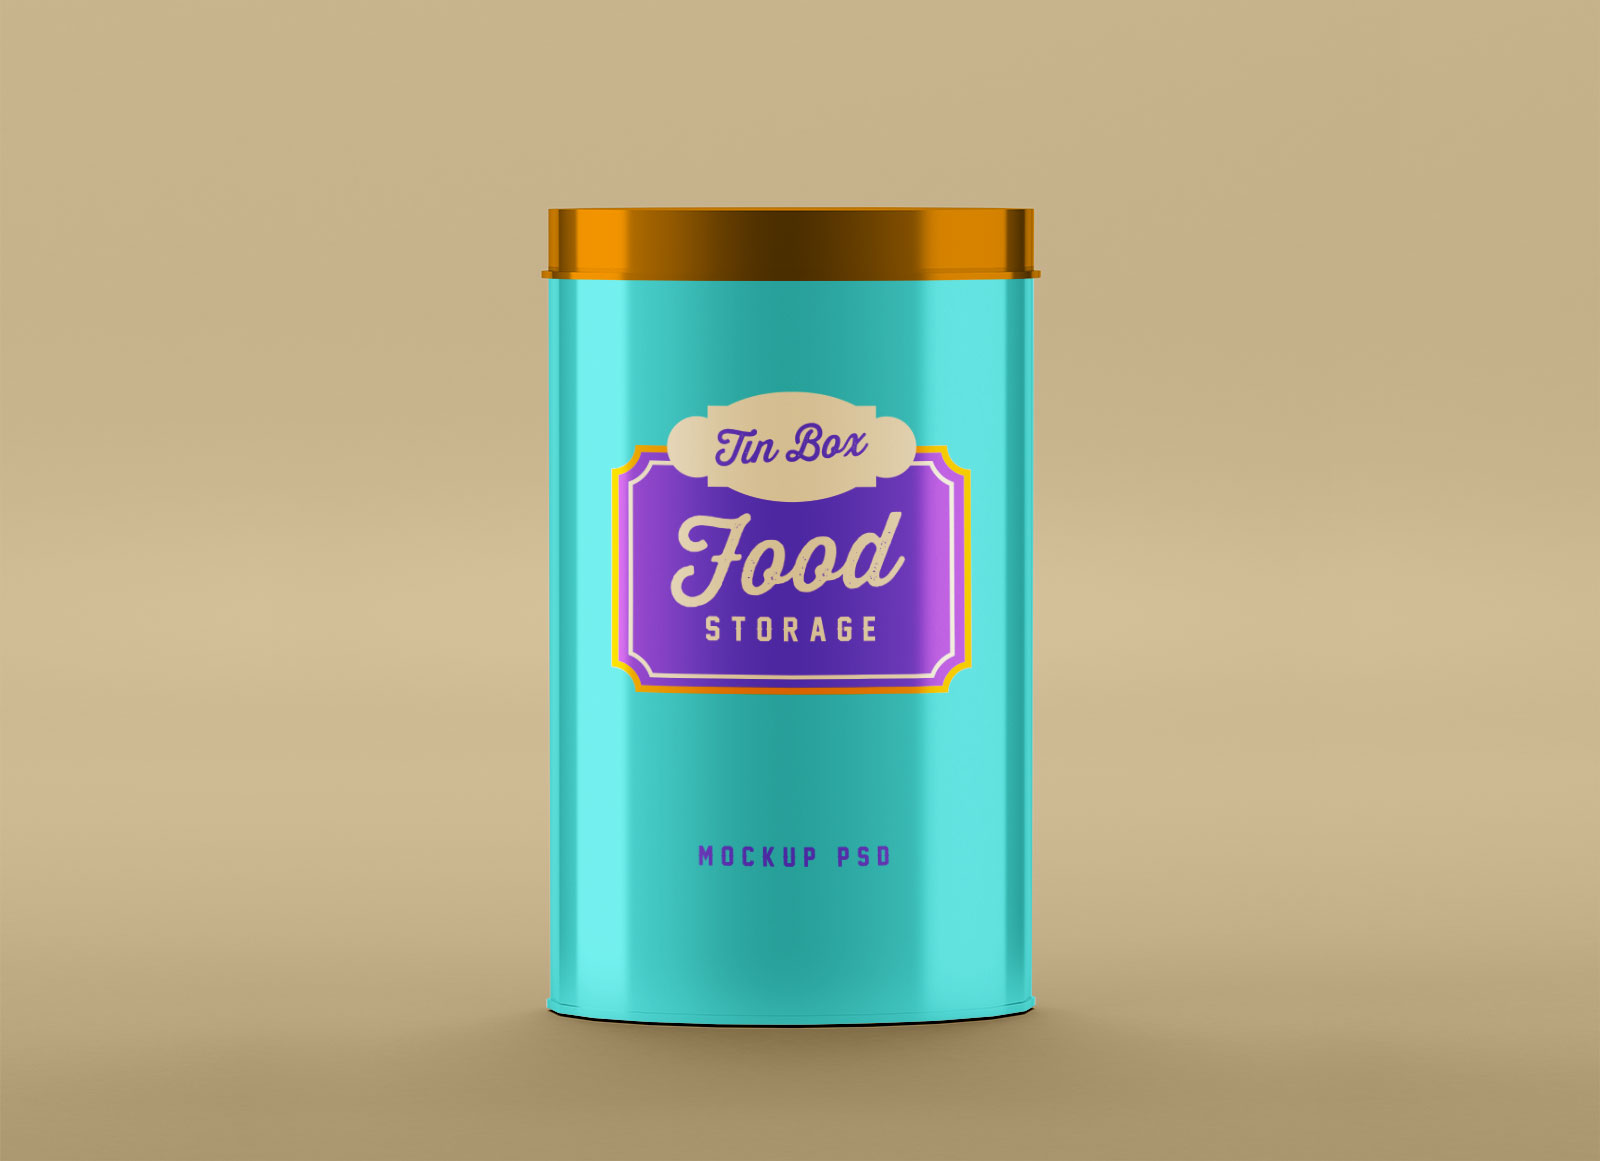 Free-Food-Storage-Tin-Can-Mockup-PSD-File-2